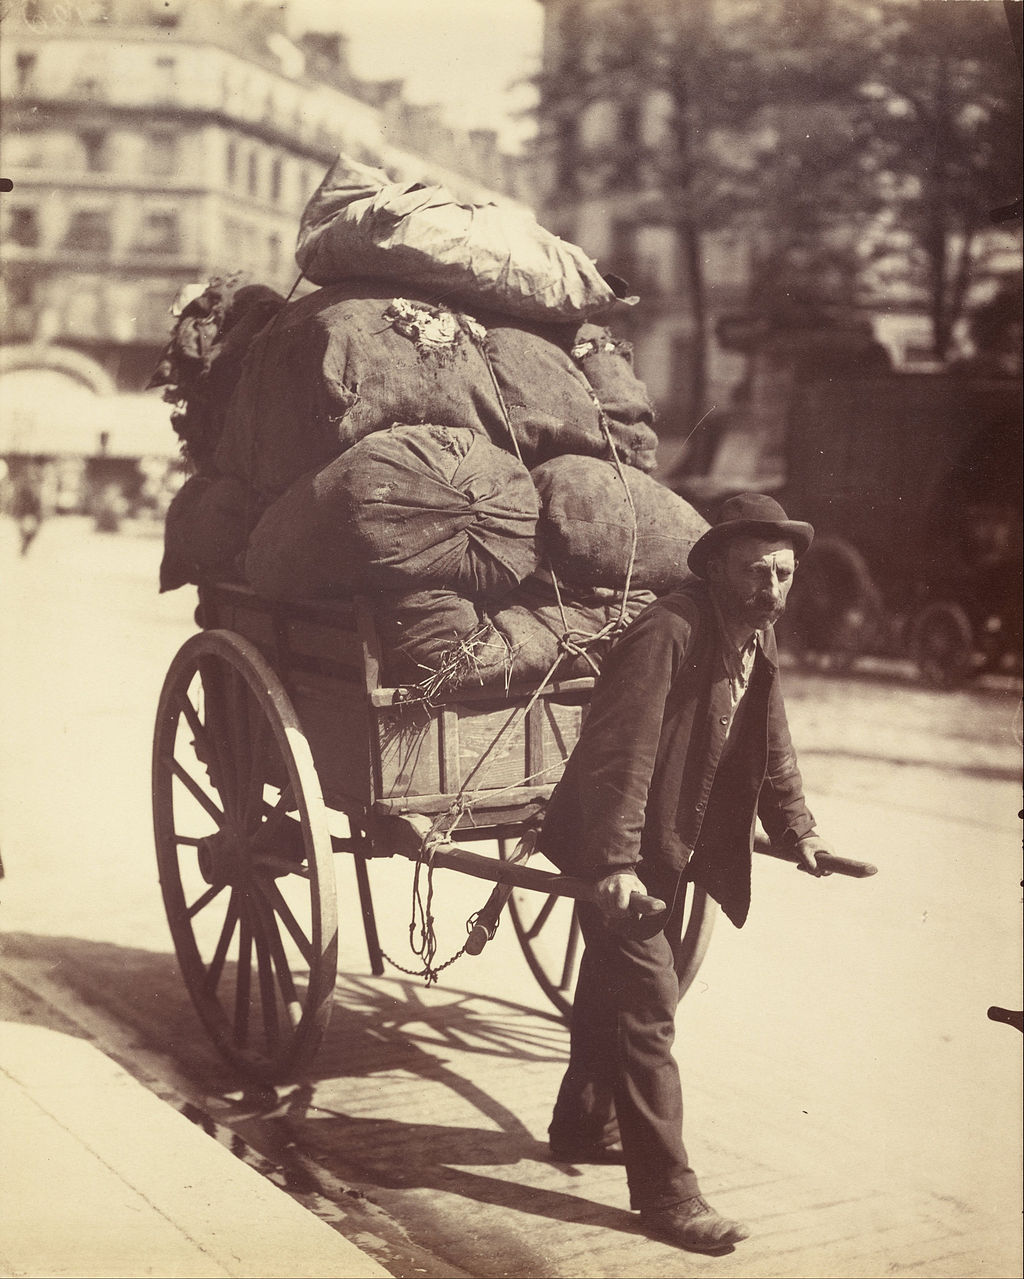 Man on a Paris street pulling a two-wheeled handcart loaded with sacks of old rags